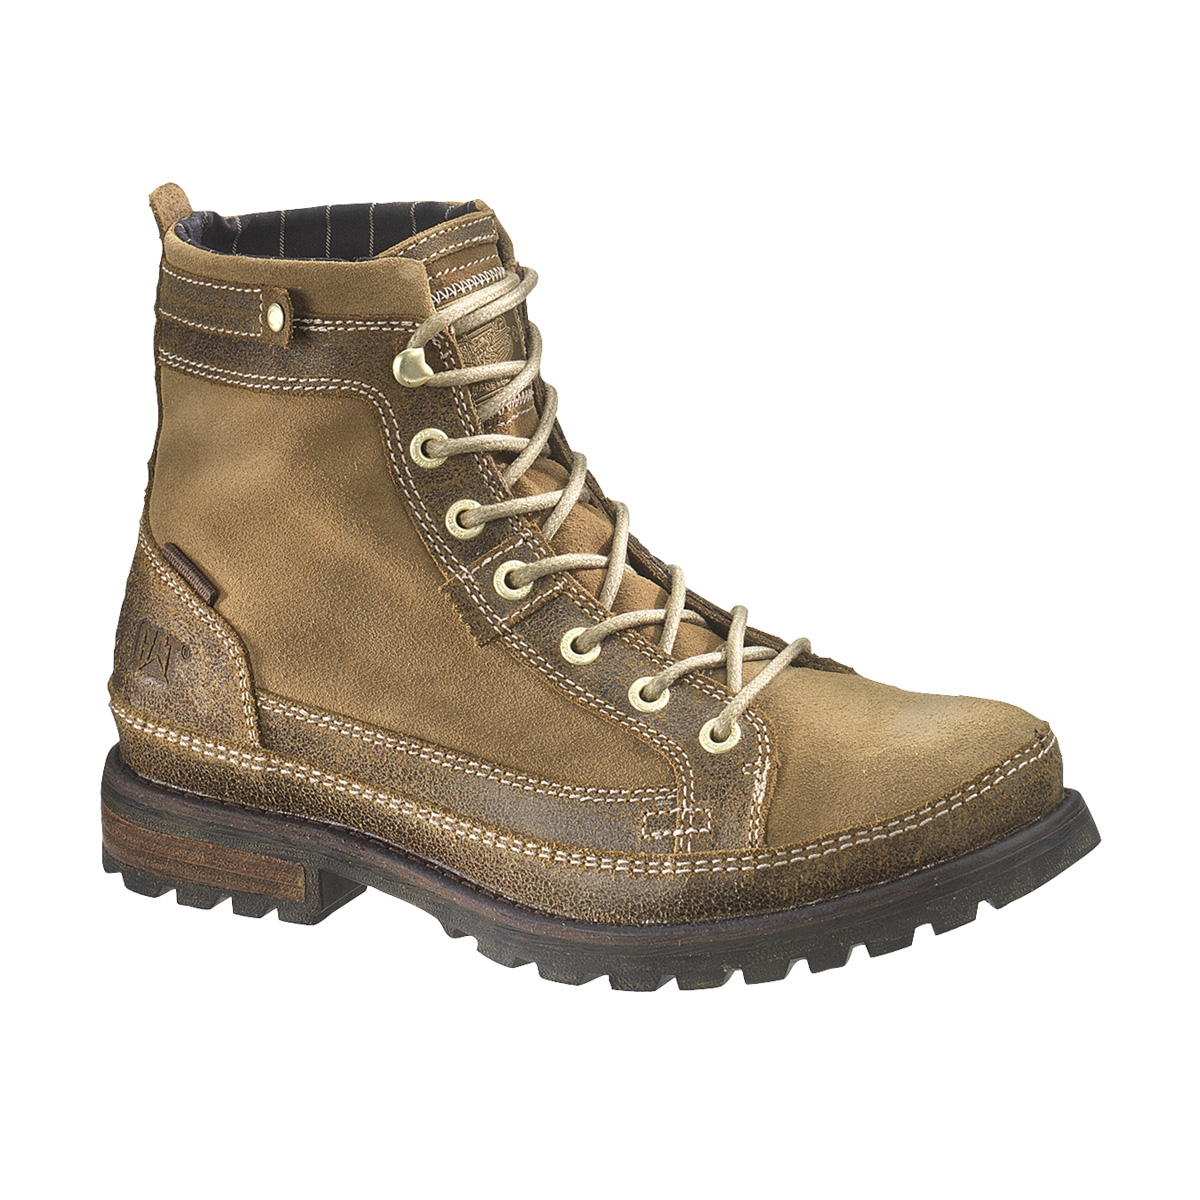 cat bryant walking boots s cracked moonracker mud